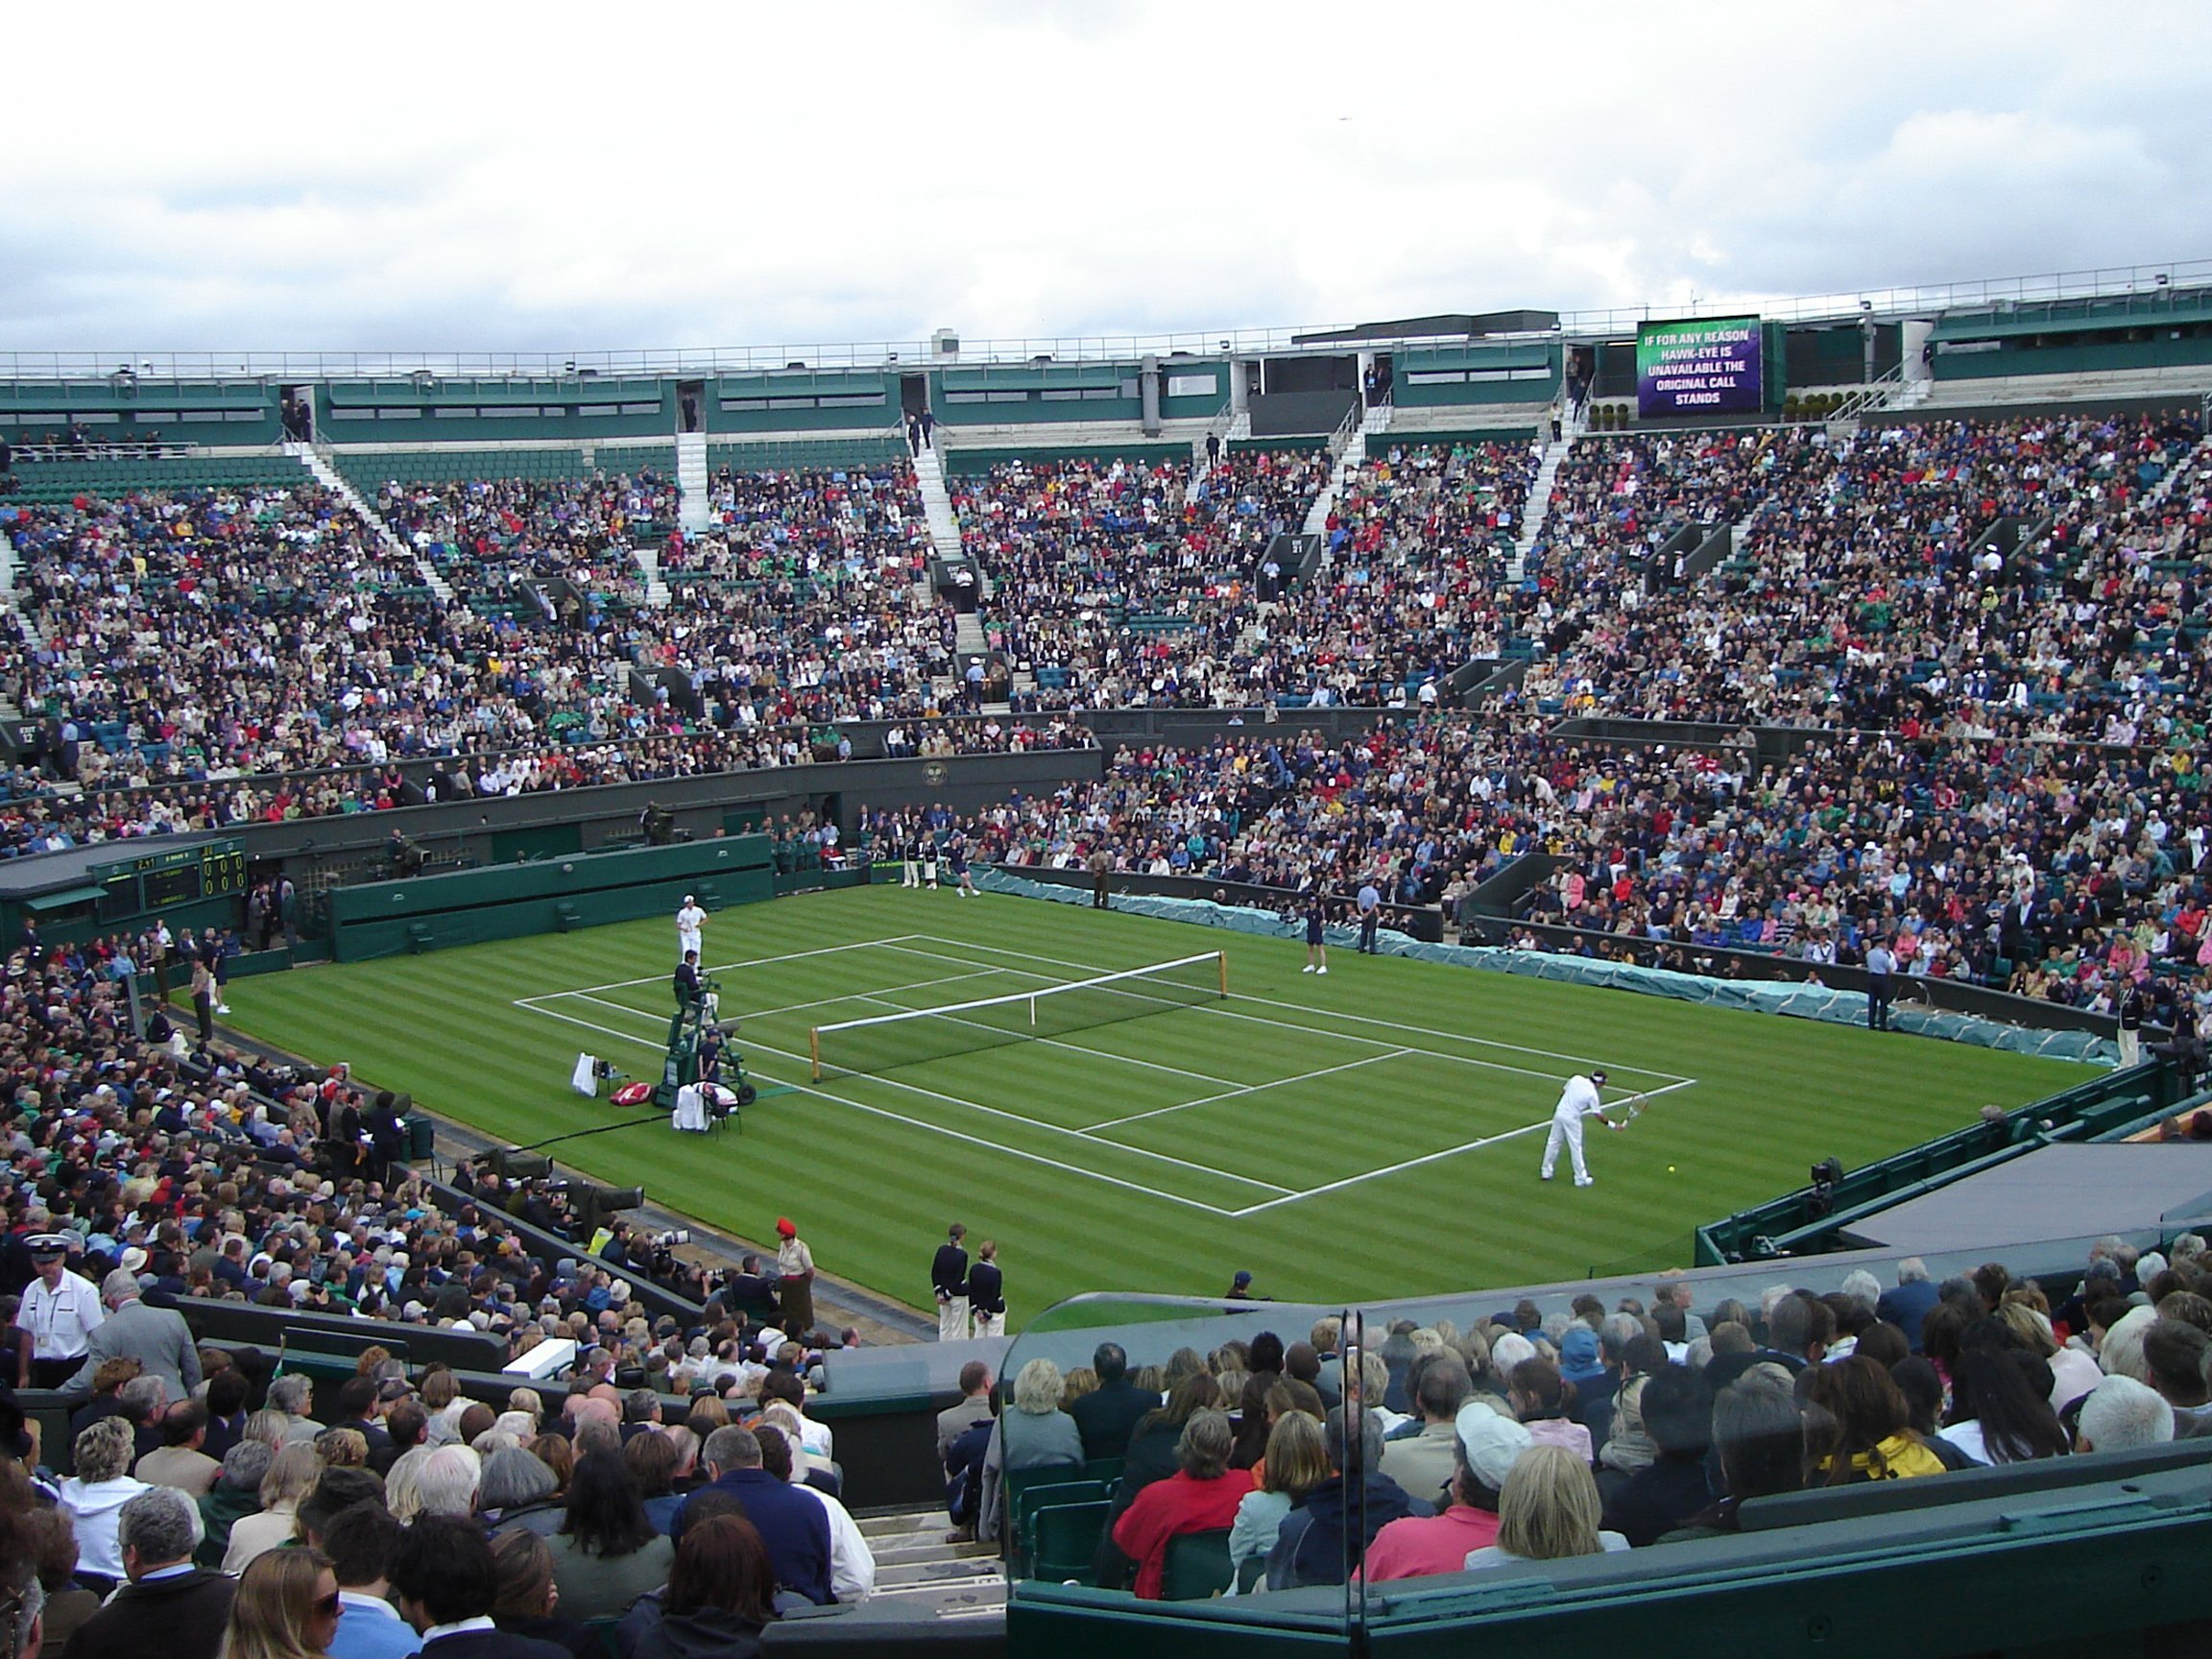 The History of the Wimbledon Tournament